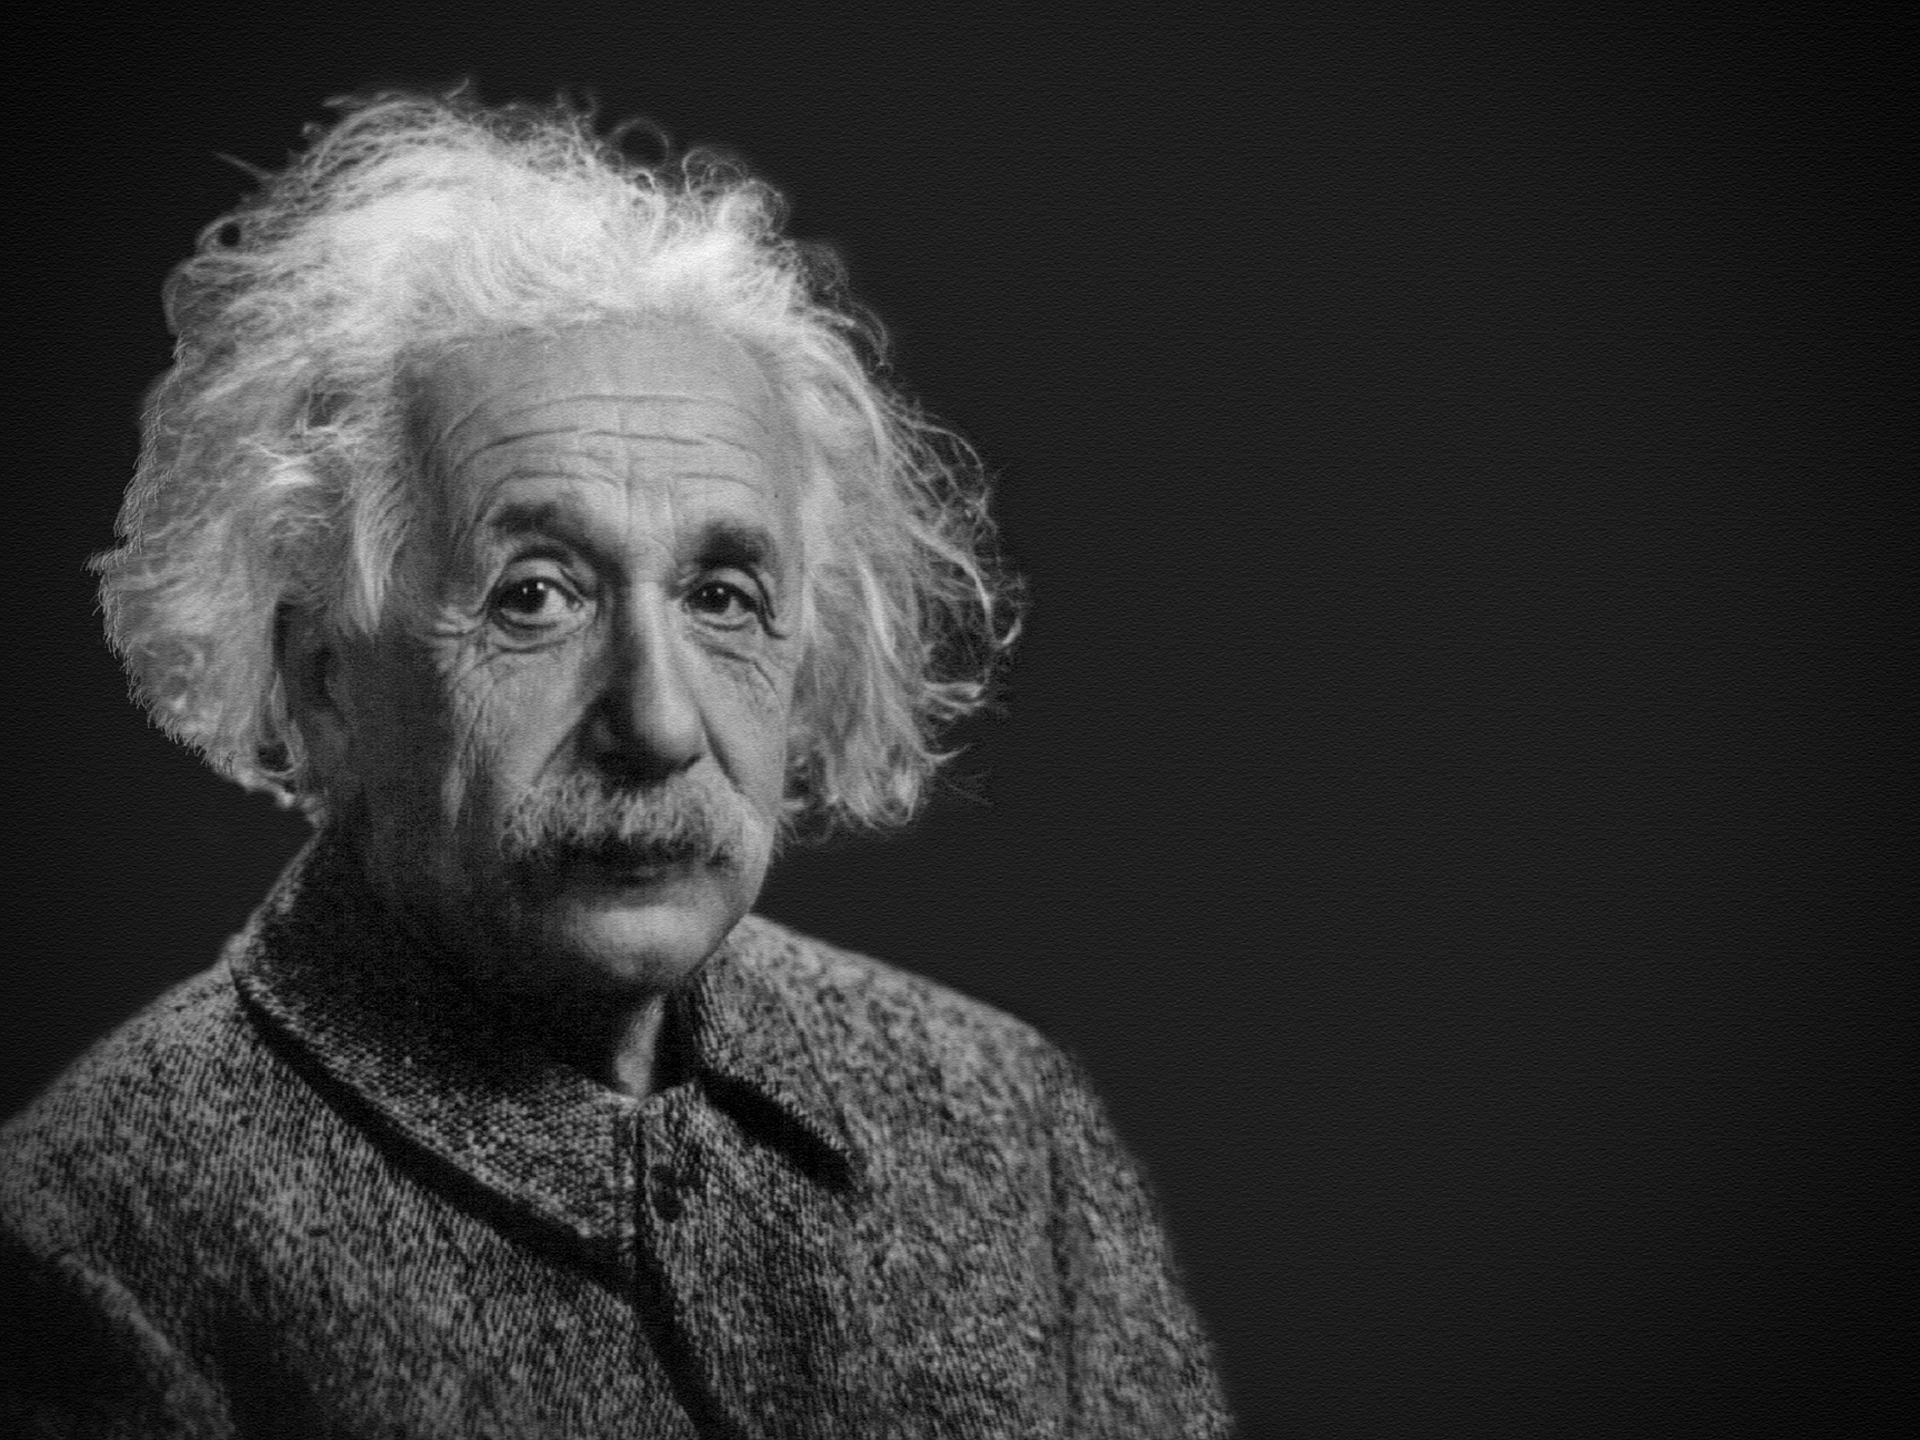 Taking Advice from Einstein on the Achievement Gap